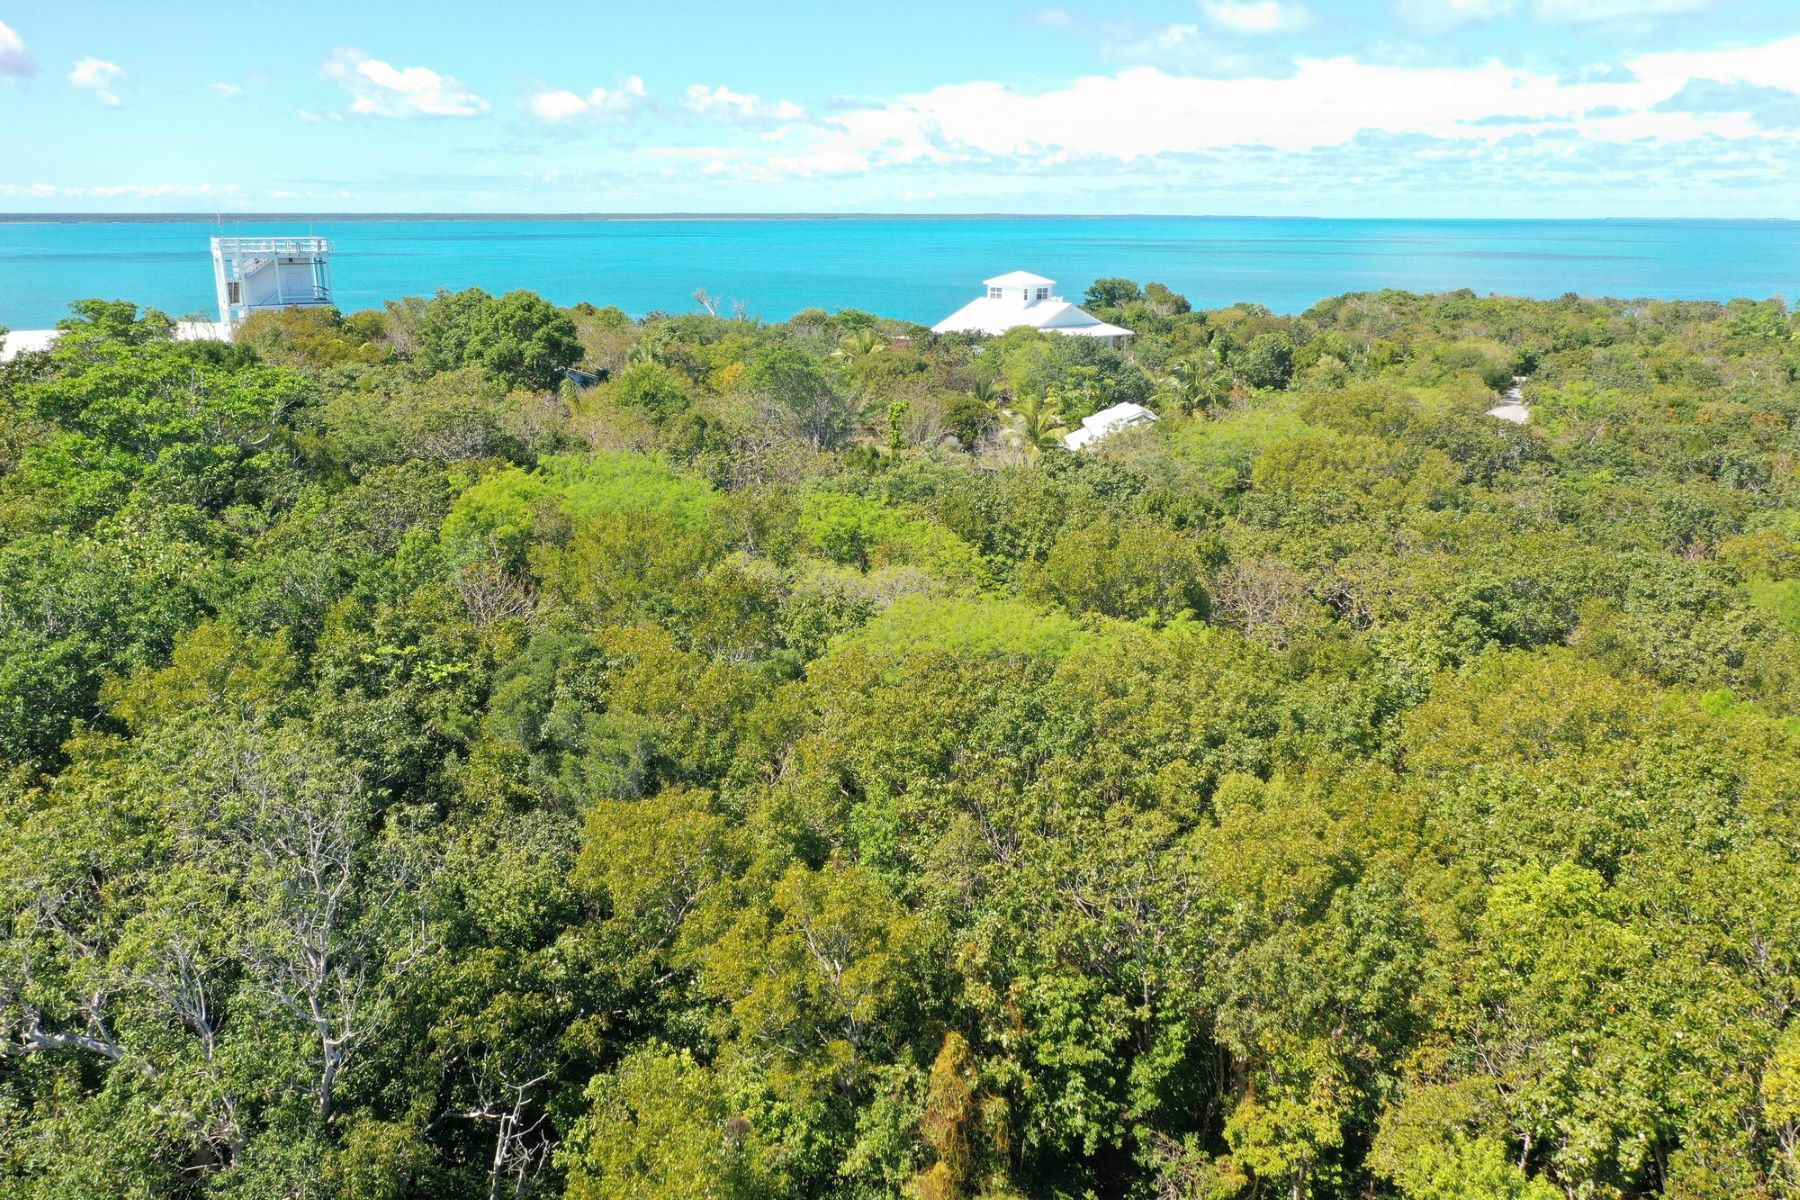 Land for Sale at Lot 1, F1 Green Turtle Cay, Abaco Bahamas